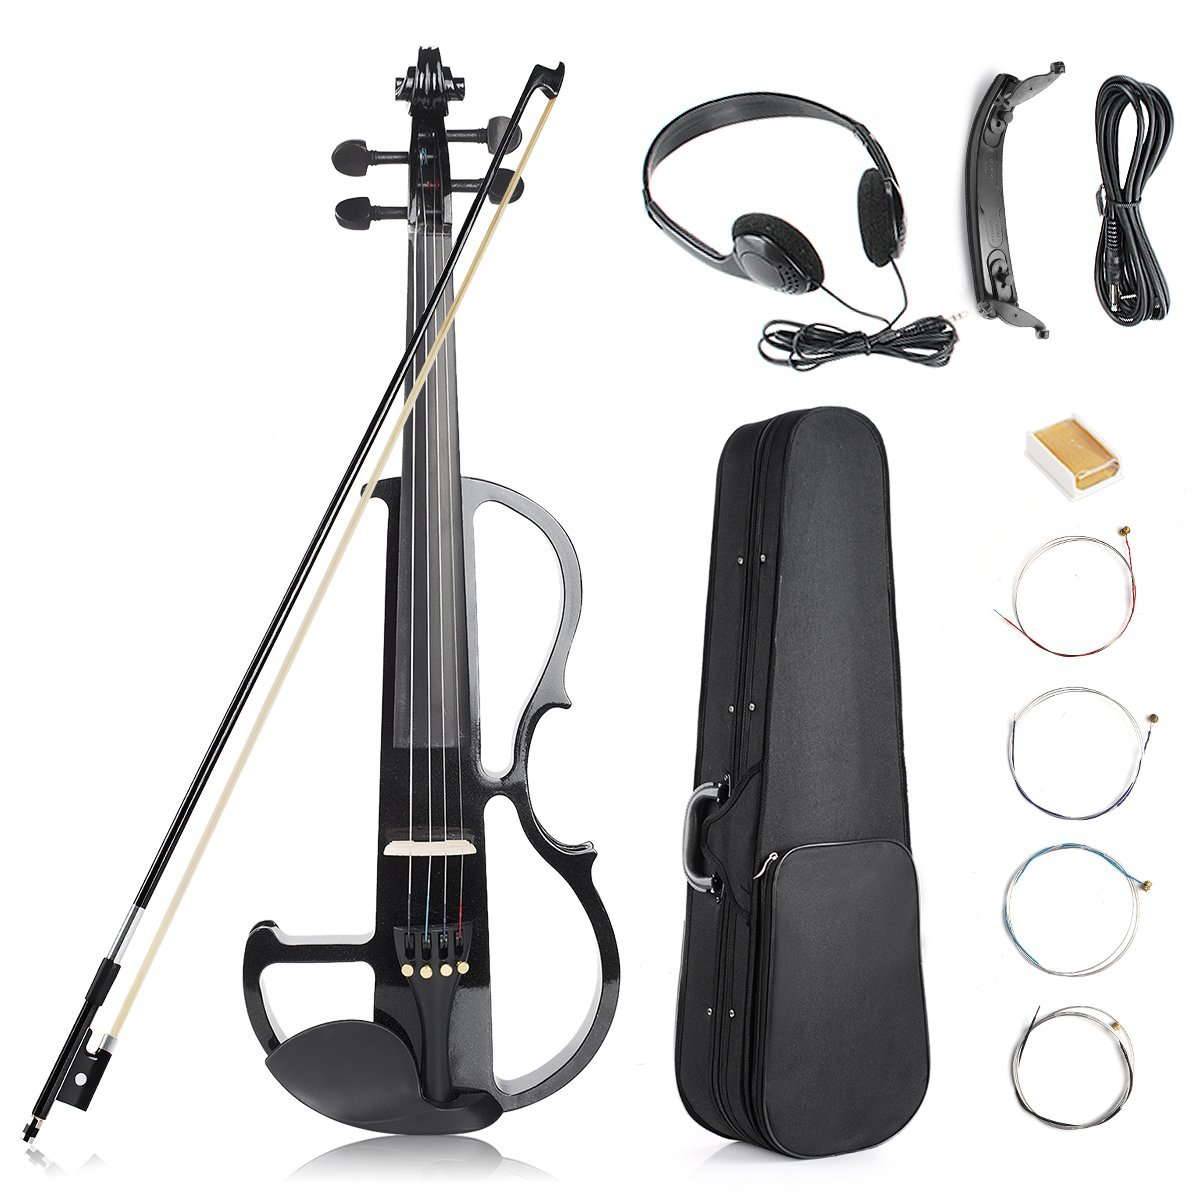 Vangoa - Black Full Size 4/4 Vintage Solid Wood Metallic Electronic Silent Mahogany Violin with Ebony Fittings, Carrying Case, Audio Cable, Rosin, Bow by Vangoa